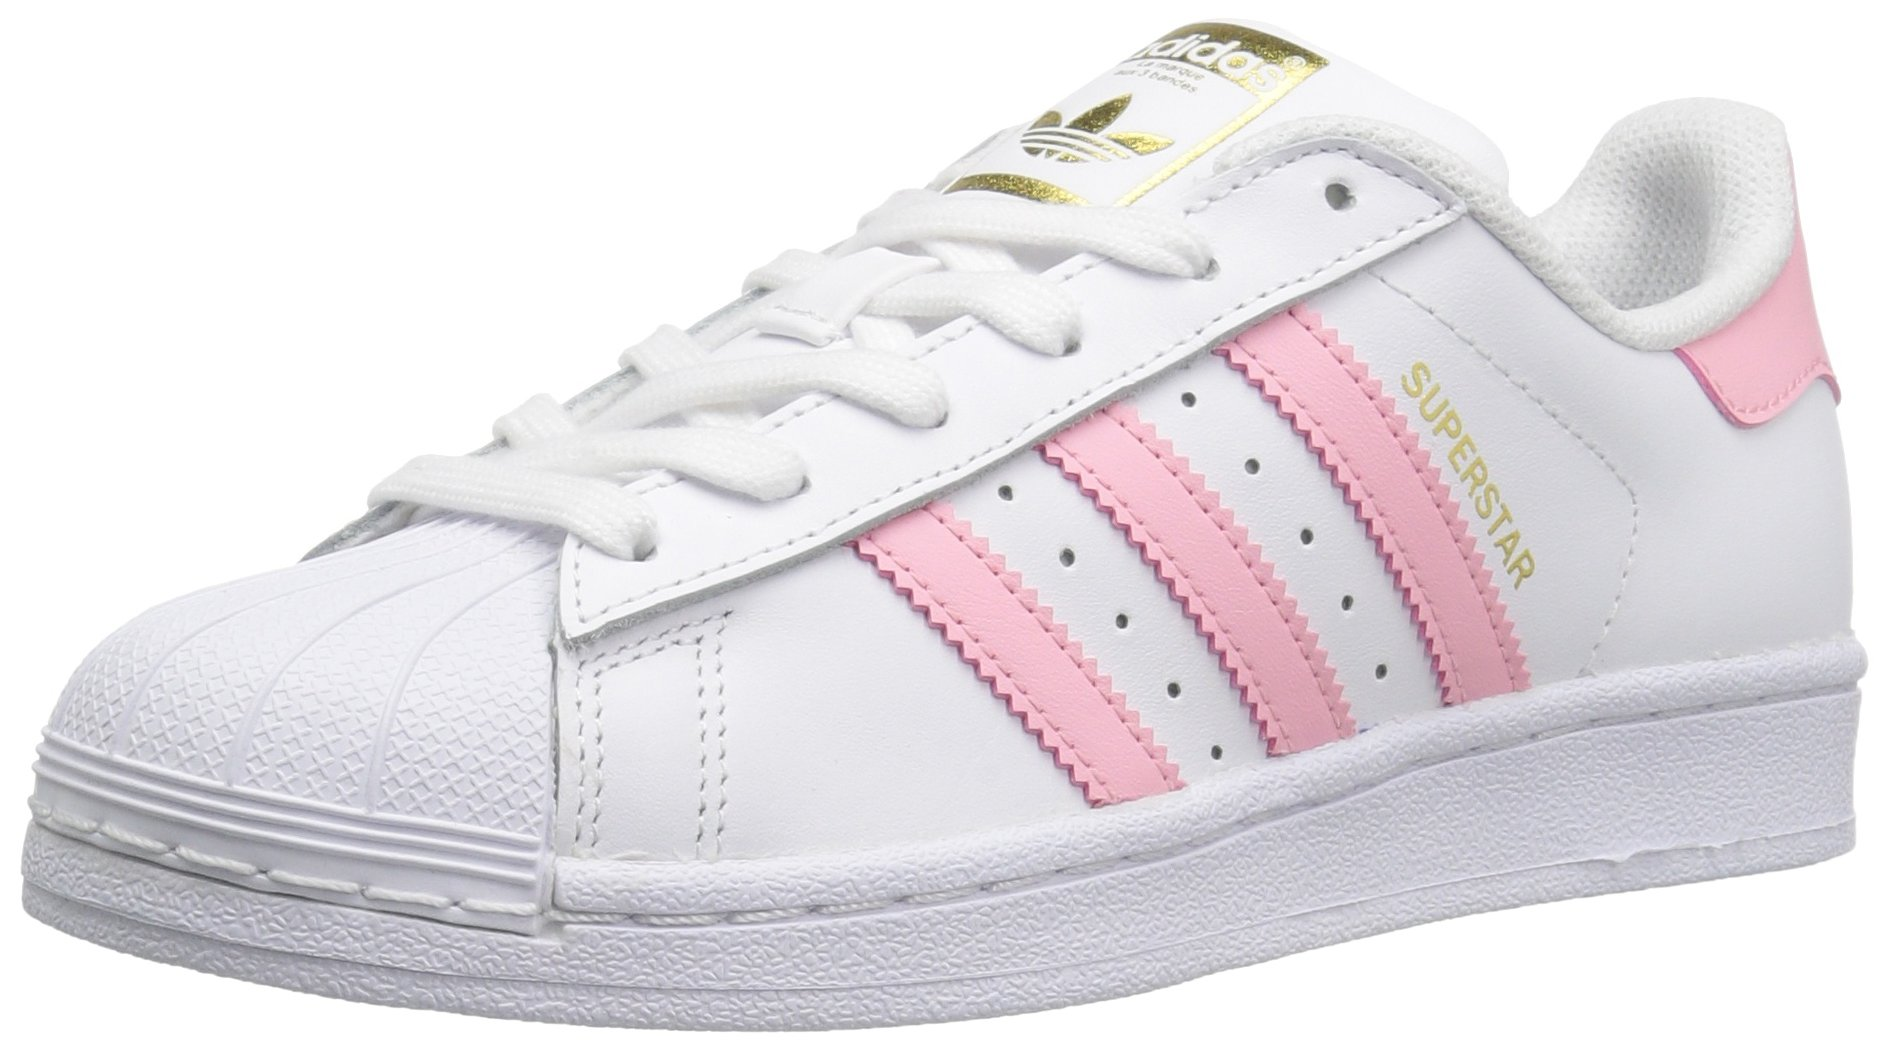 adidas Originals Boys' Superstar Foundation J Sneaker, White/Clear Light Pink Metallic/Gold, 4.5 M US Big Kid